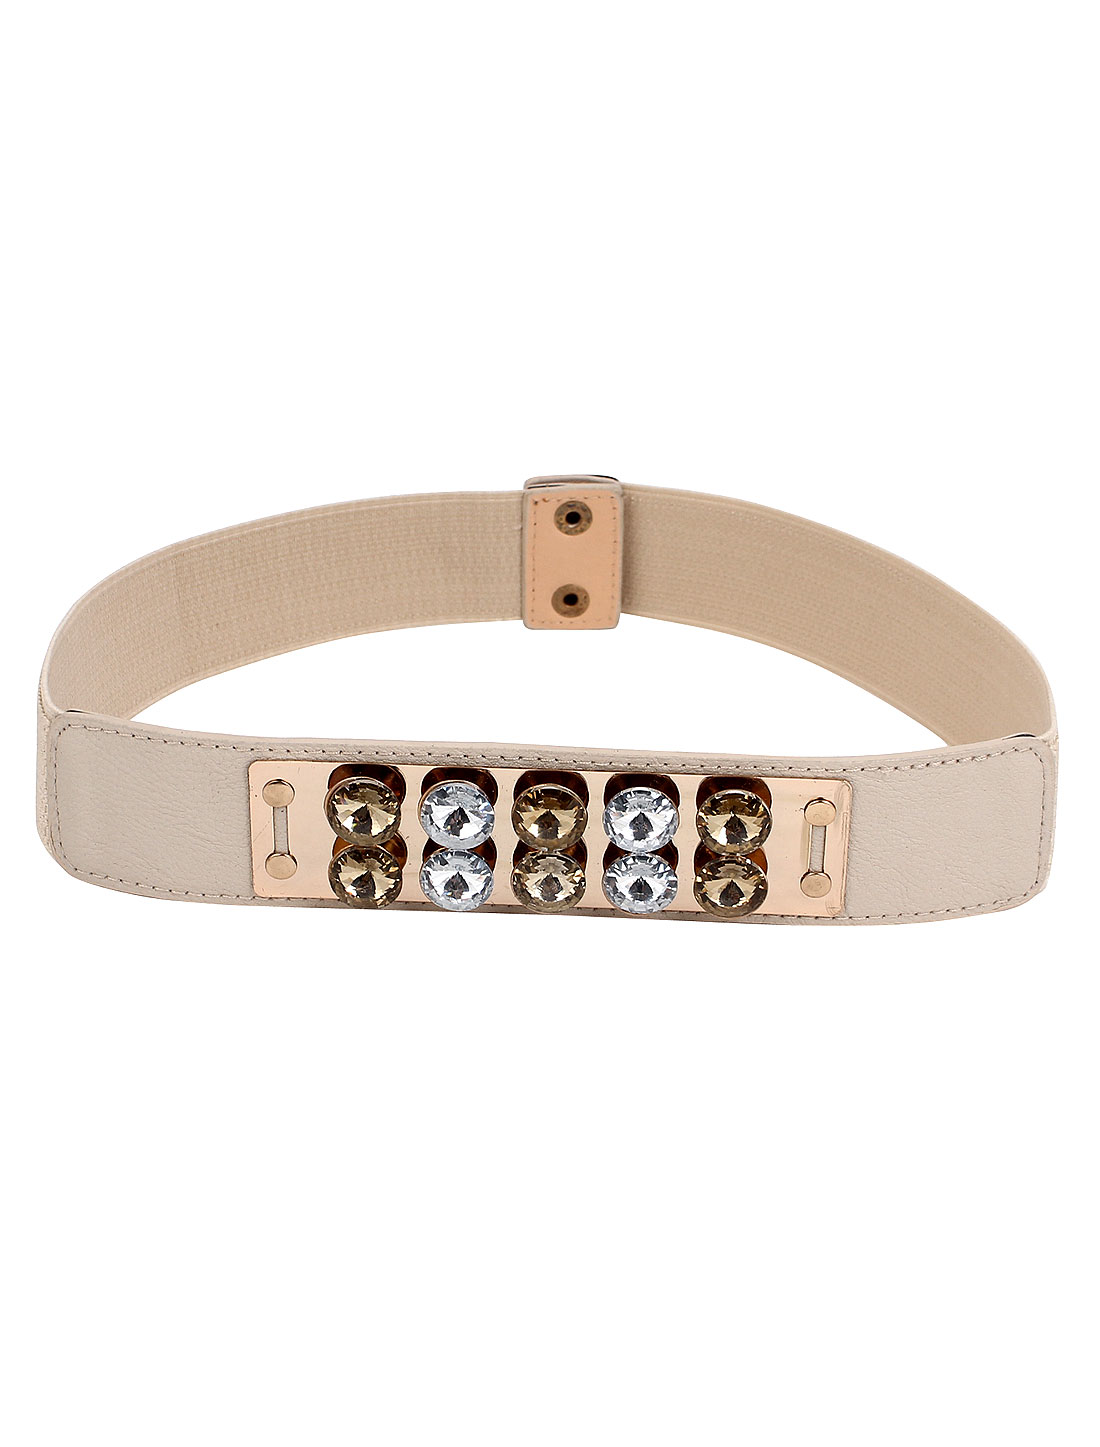 Metal Press Button Buckle Faux Rhinestone Decor Elastic Waist Belt Beige